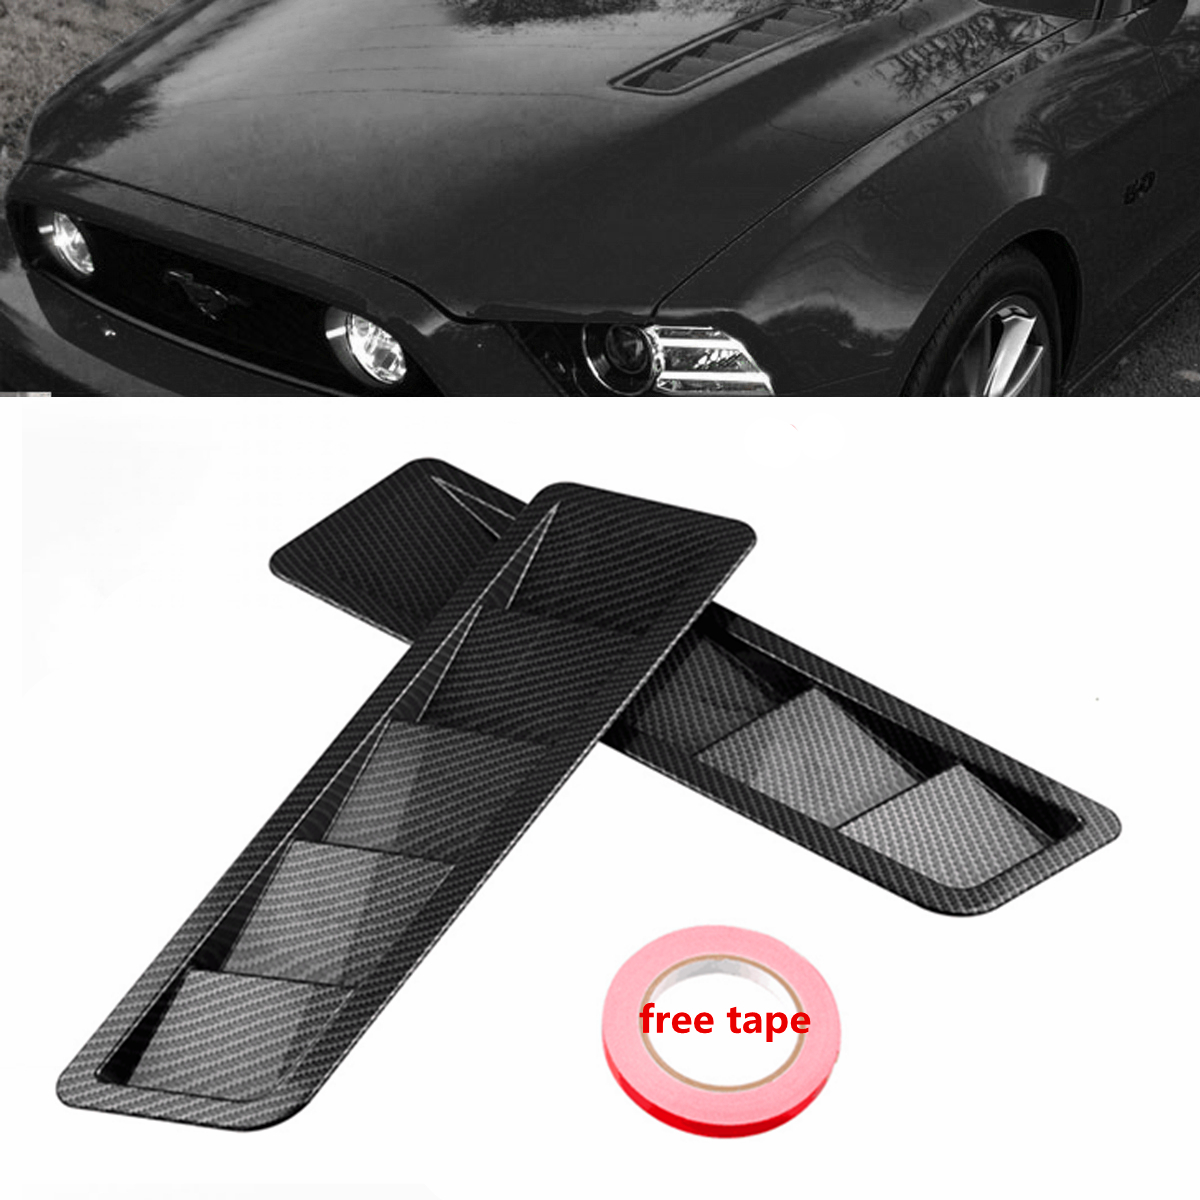 2pcs Bonnet Hood Exterior Vent Grille Cover Air Flow Intake Hood Self-Adhesive Louver Window Cooling Panel For Mustang grille